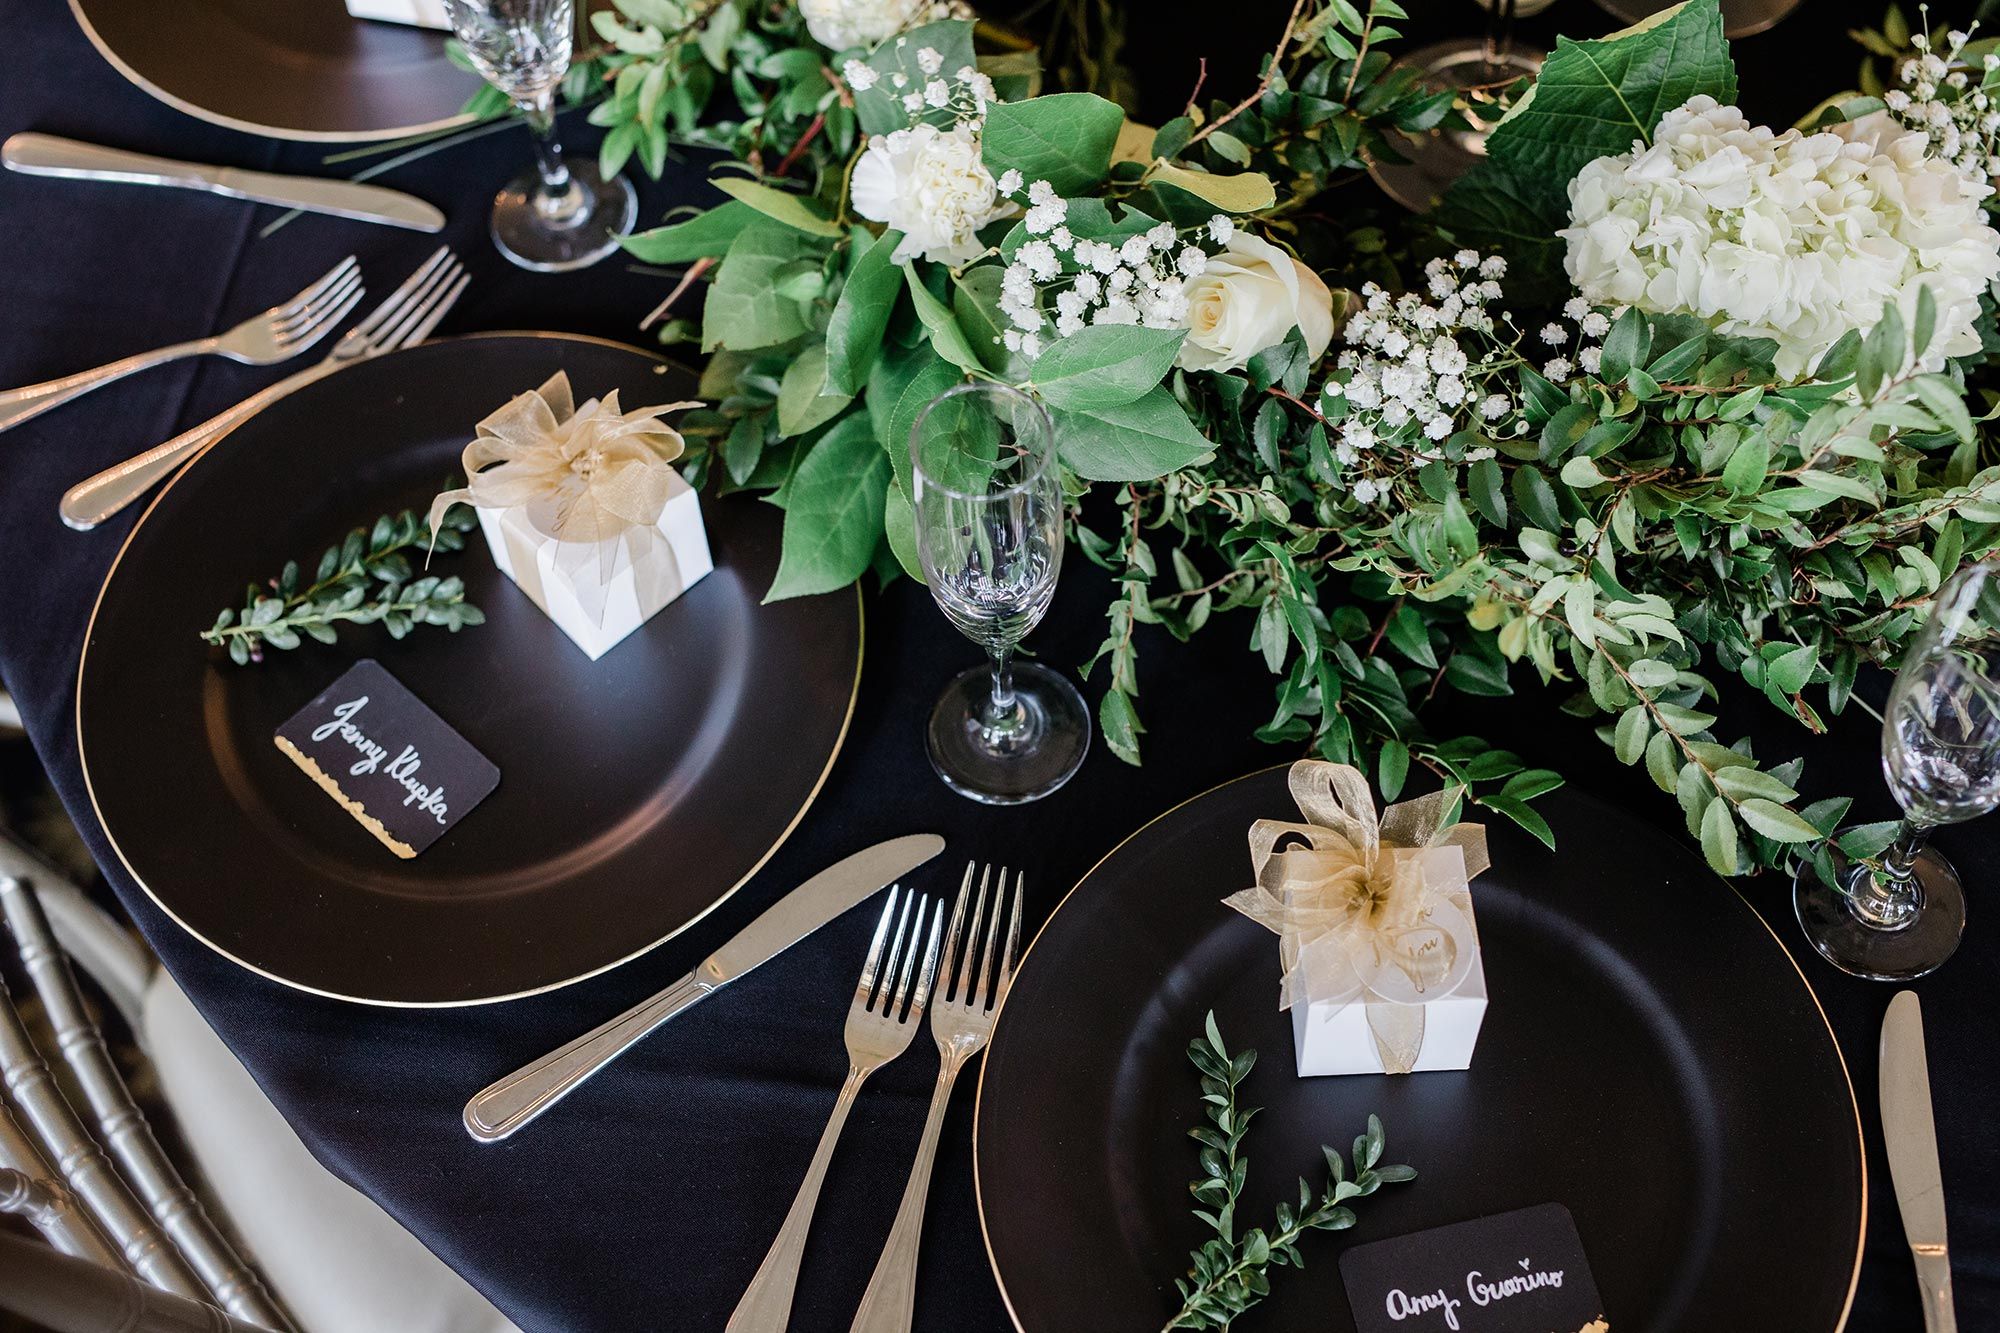 Chic Queer Wedding in West Chester Pennsylvania showing guest place settings Judson Rappaport Photography